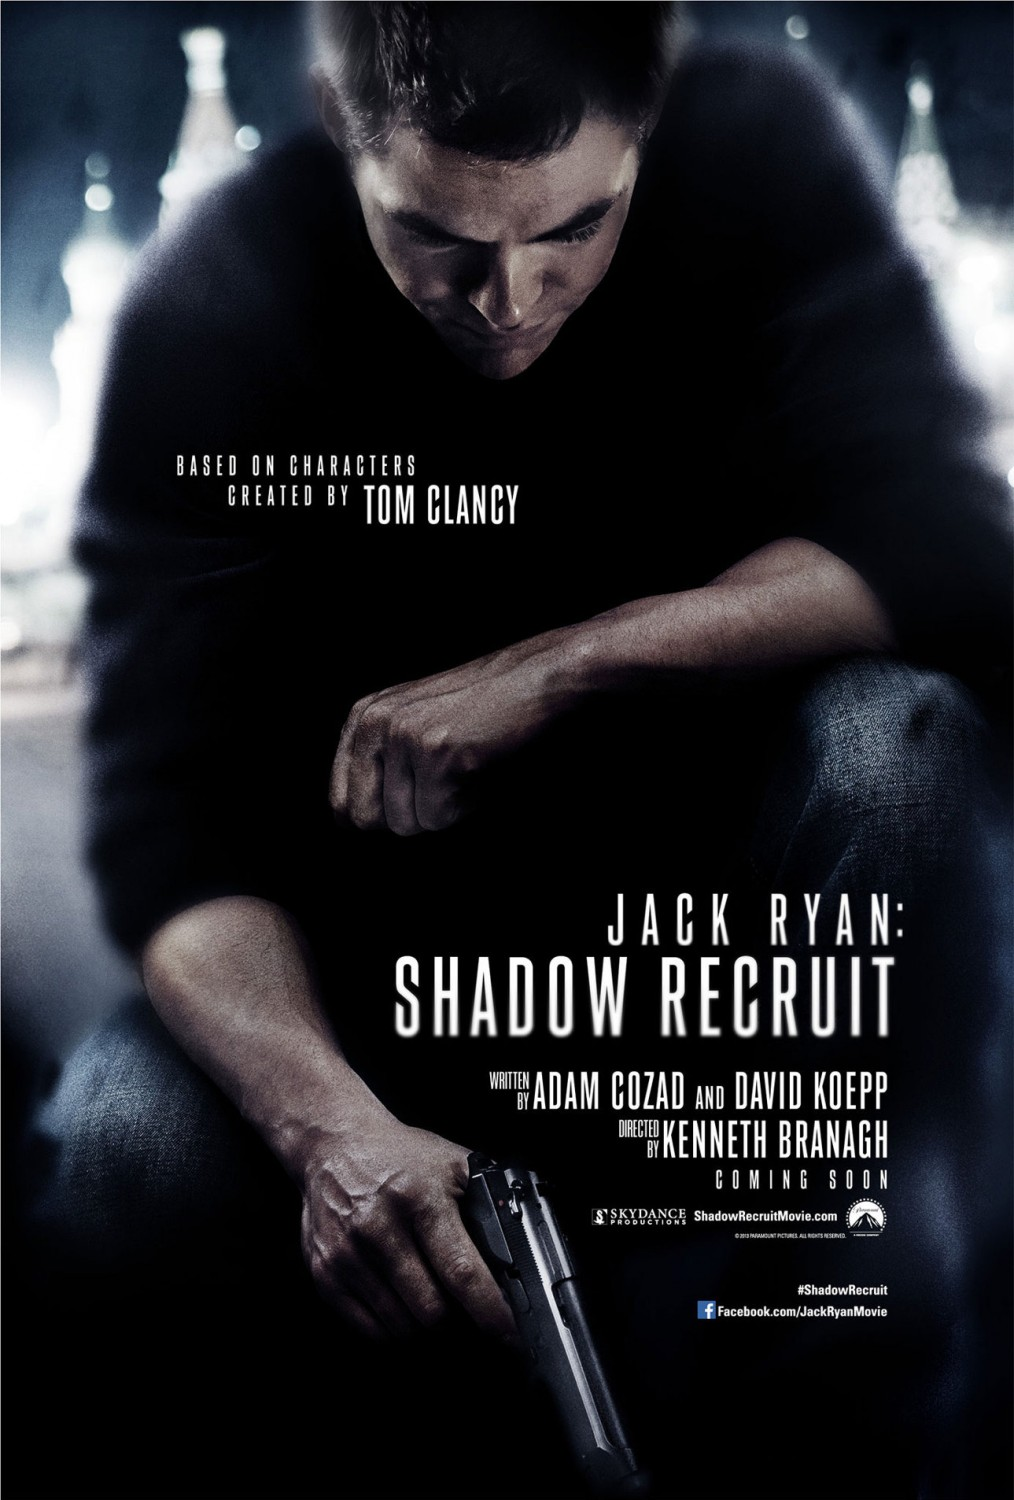 Jack Ryan: Shadow recruit tráiler.